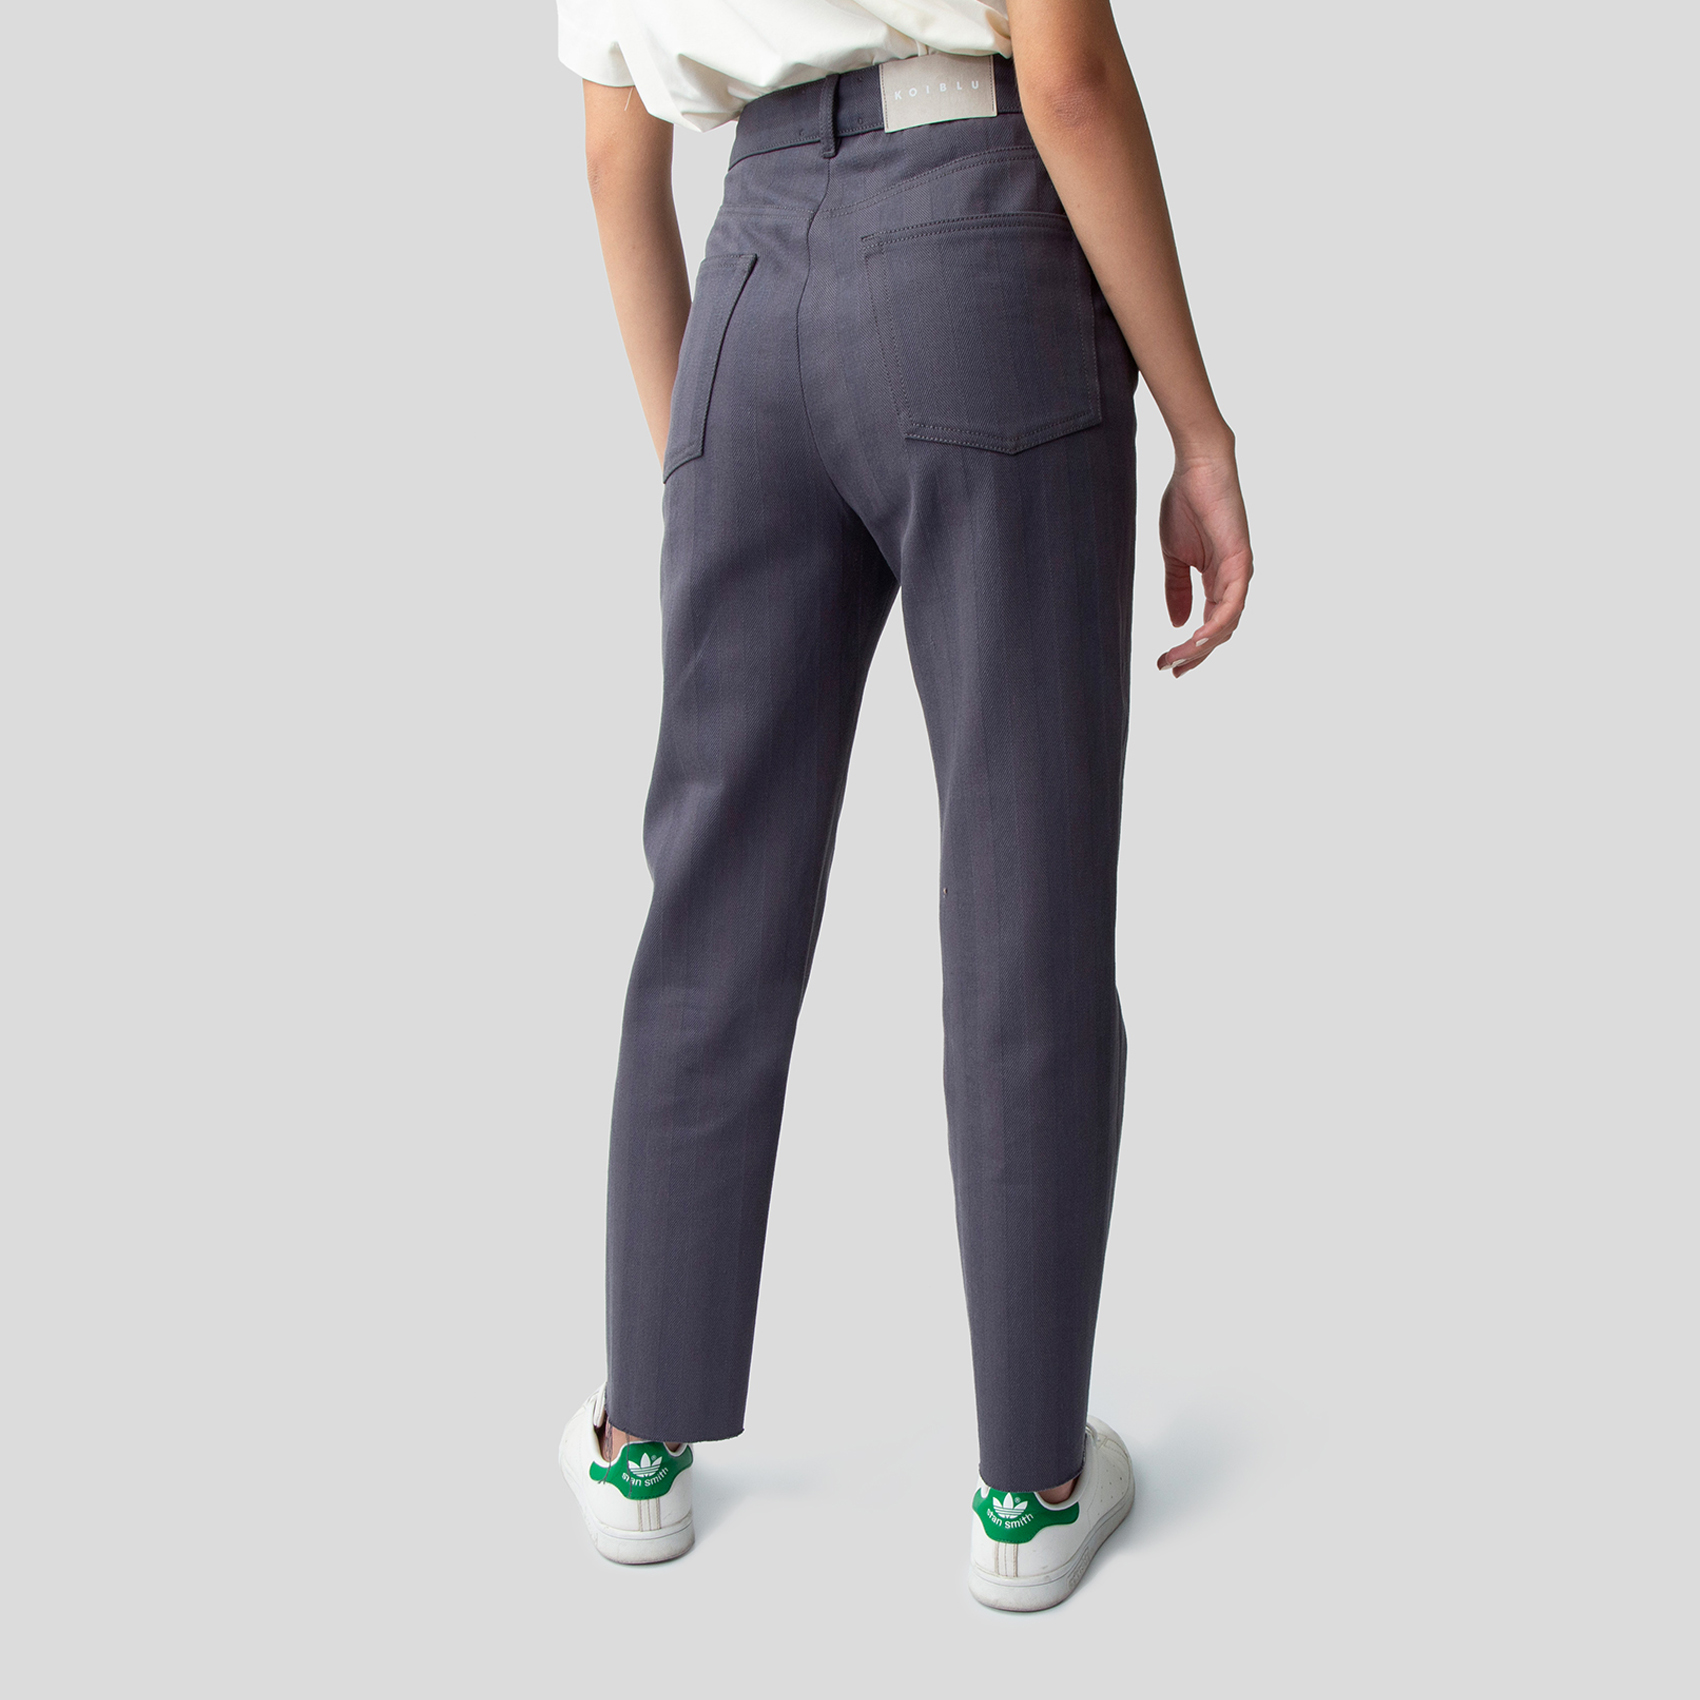 Picture of Navy grey denim straight pants